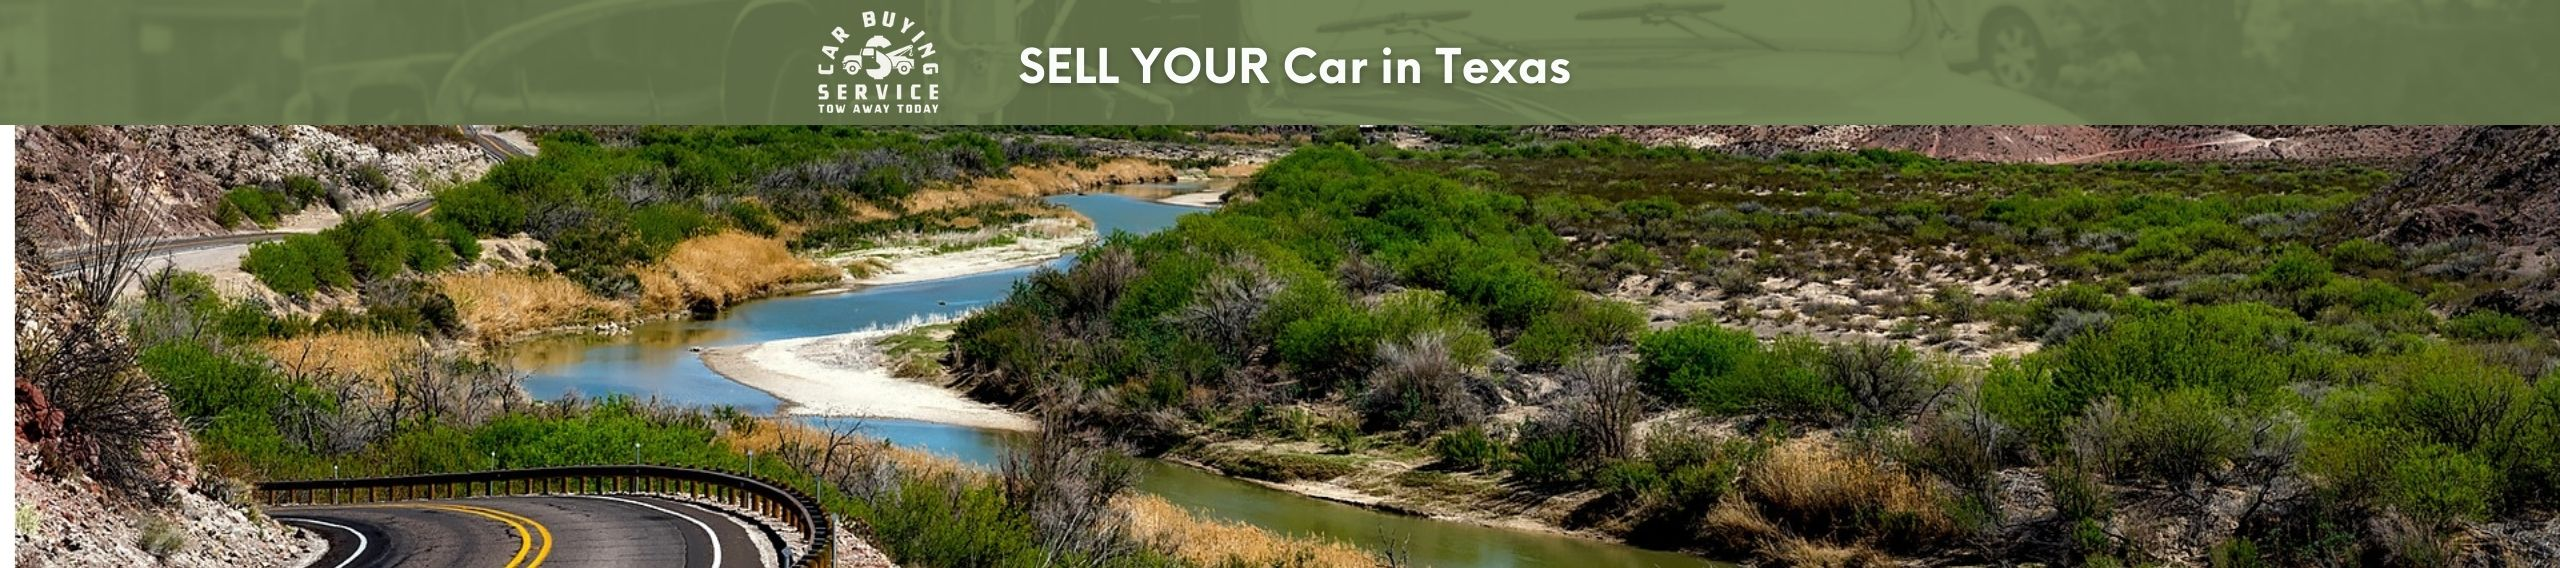 sell your car in Texas, TX